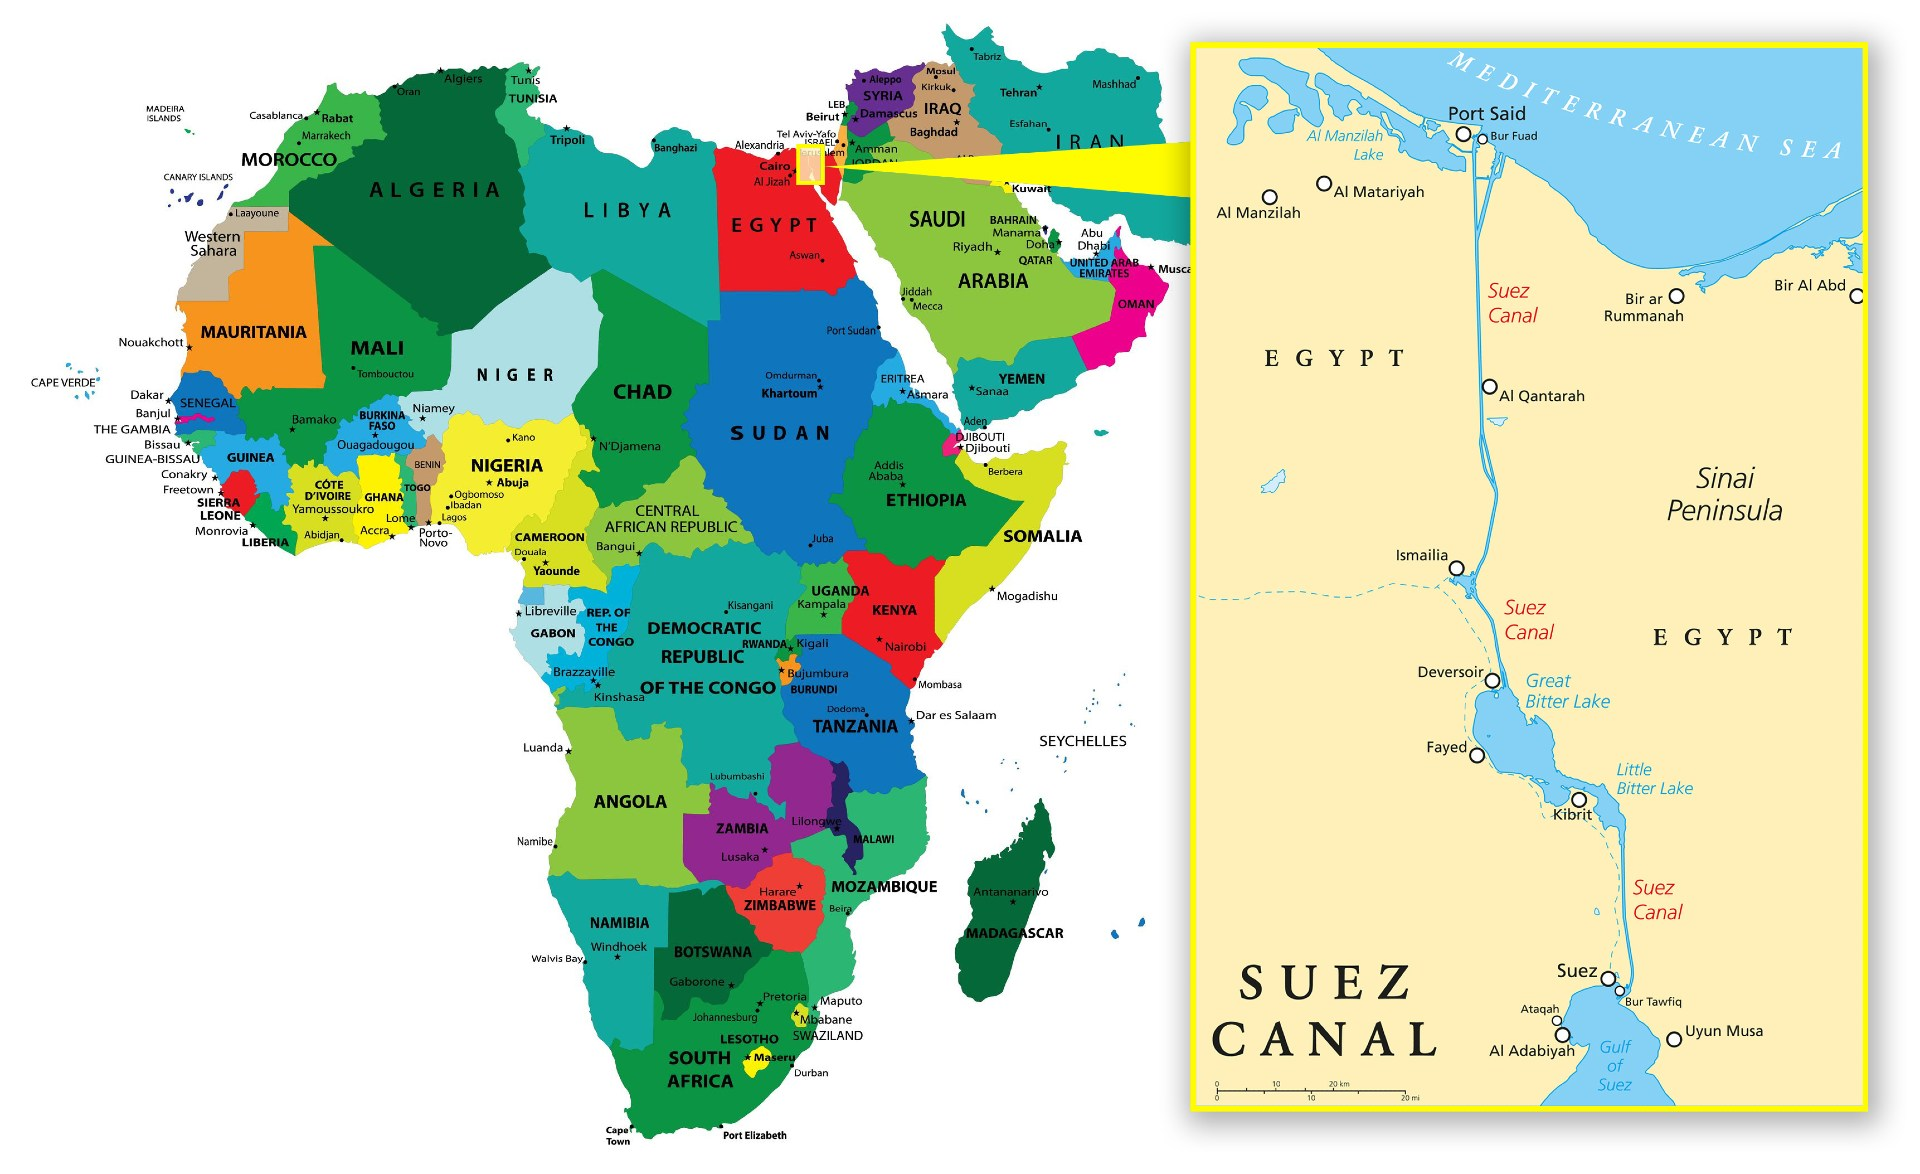 The Suez Canal is located on the Isthmus of Suez in eastern Egypt and connects the continents of Africa and Asia.